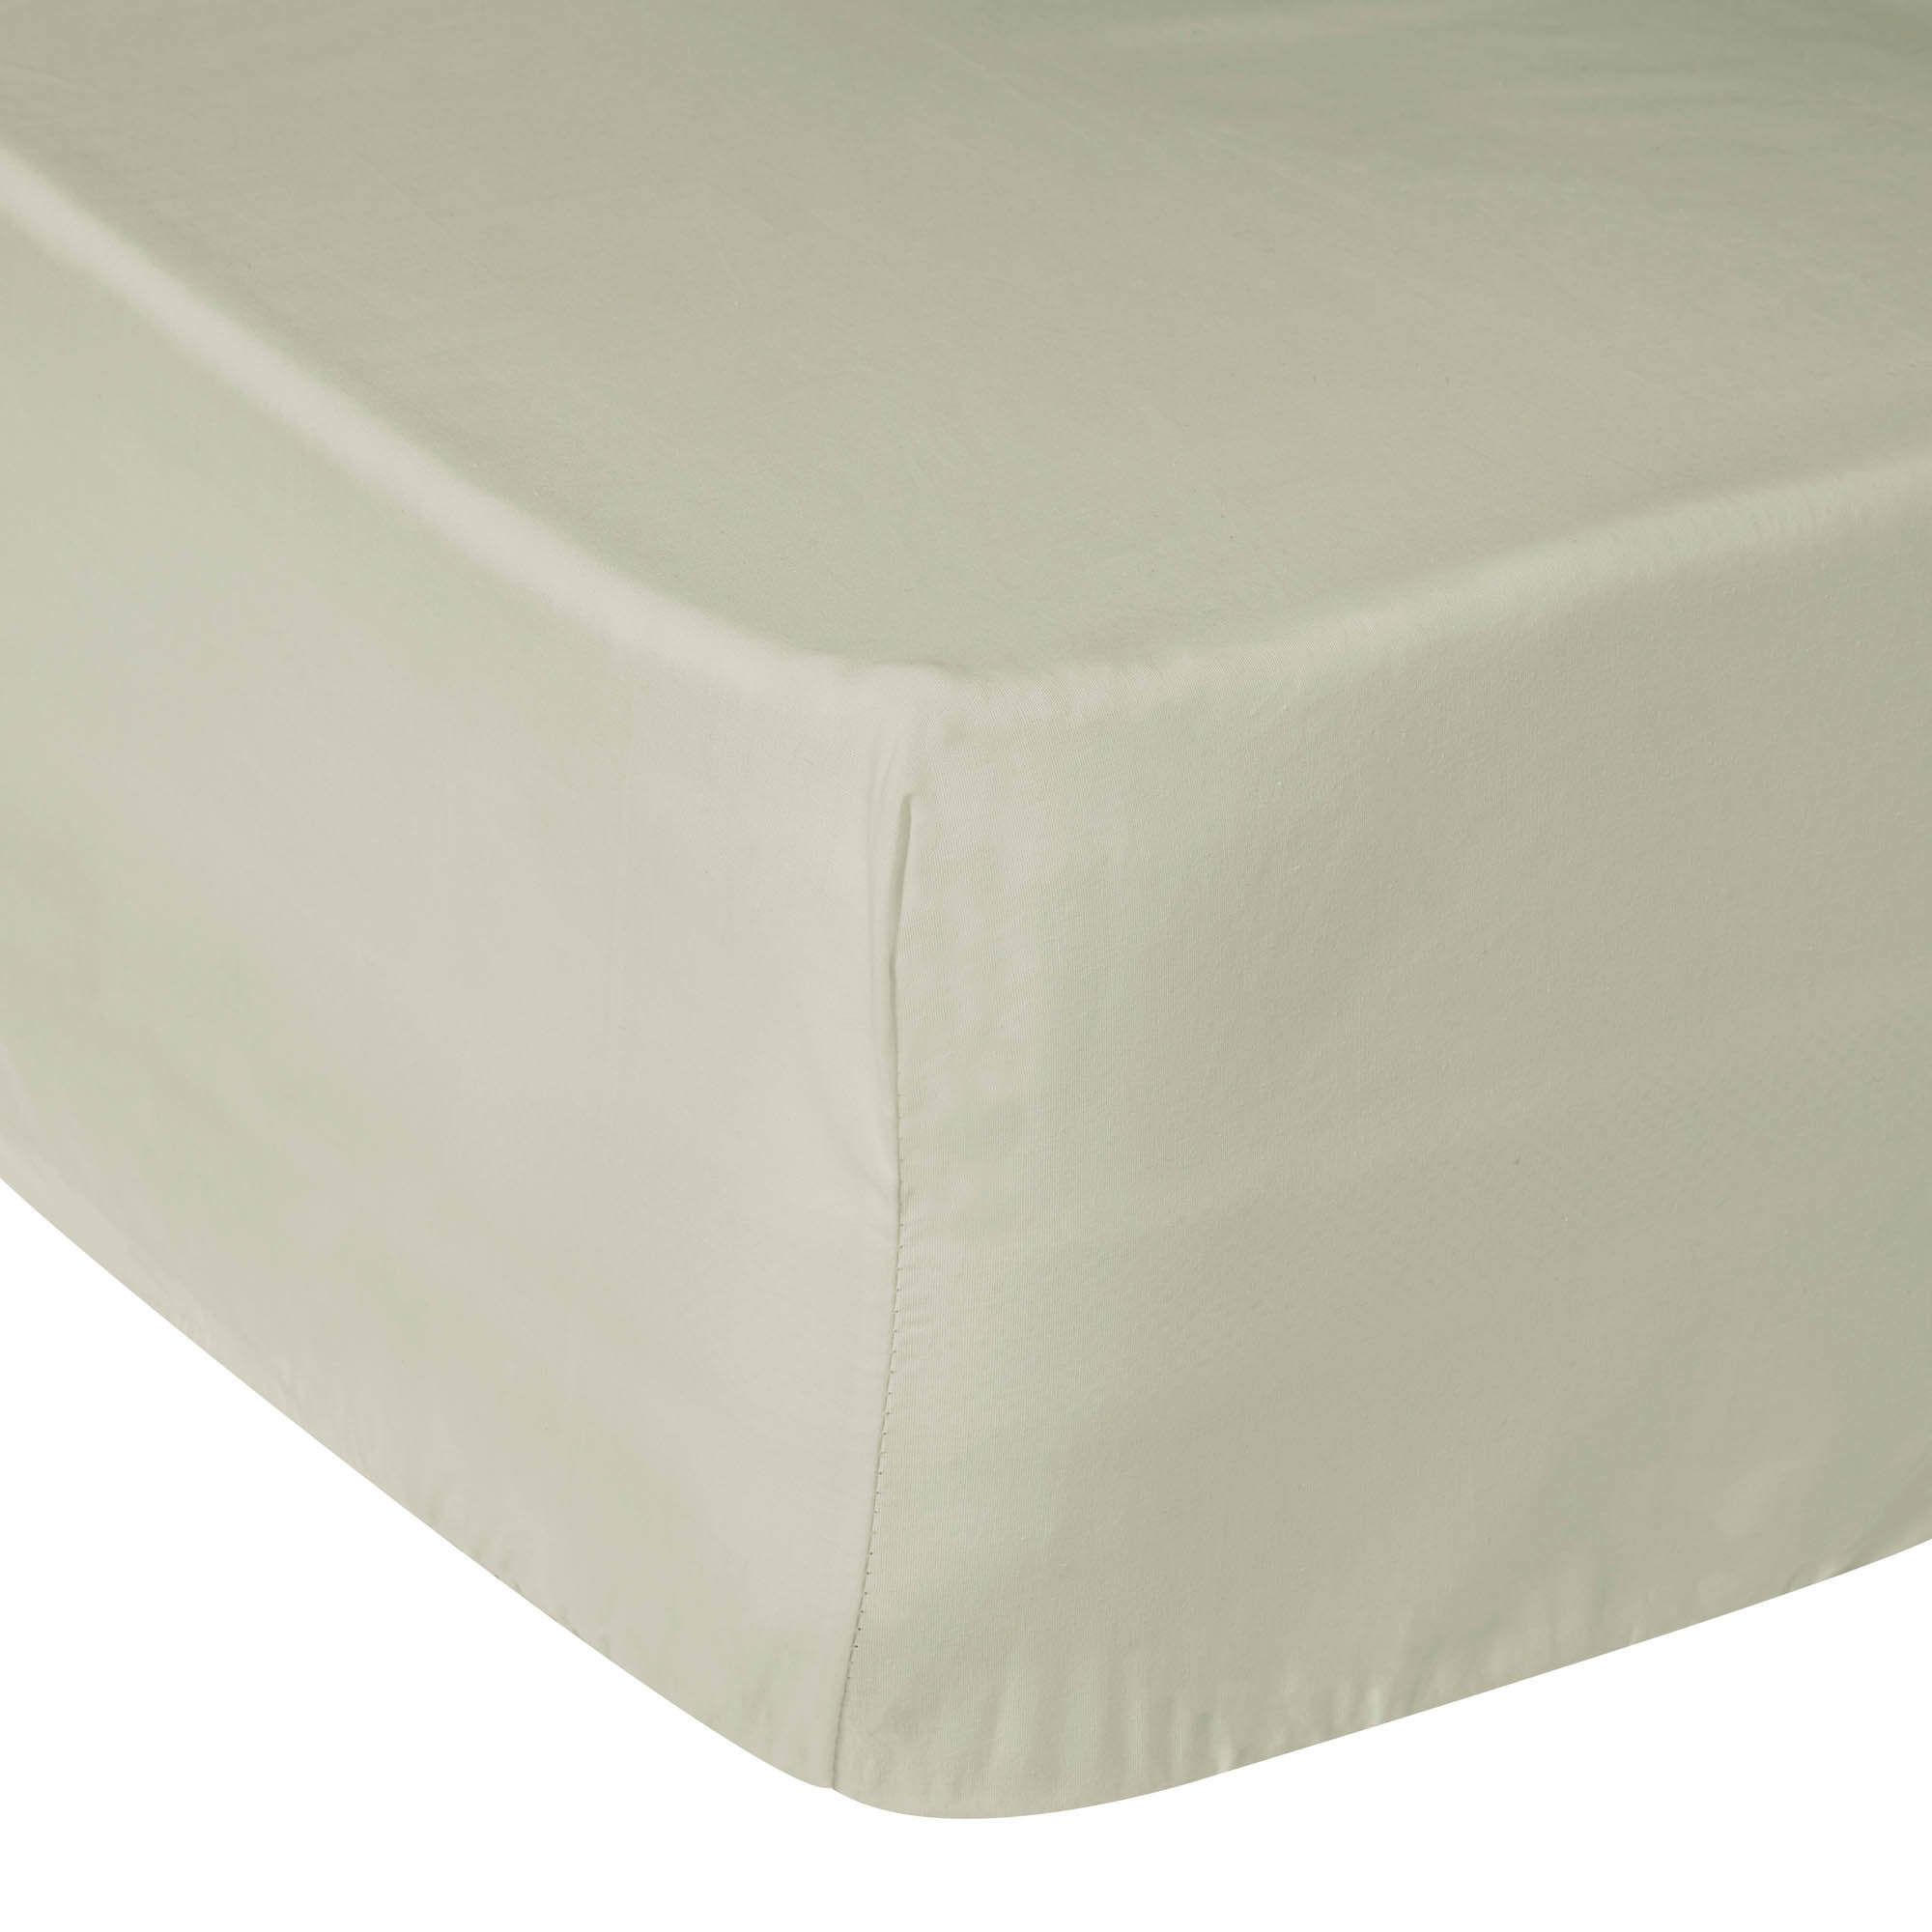 Image of 5A Fifth Avenue 300 Thread Count Modal Platinum Fitted Sheet Platinum